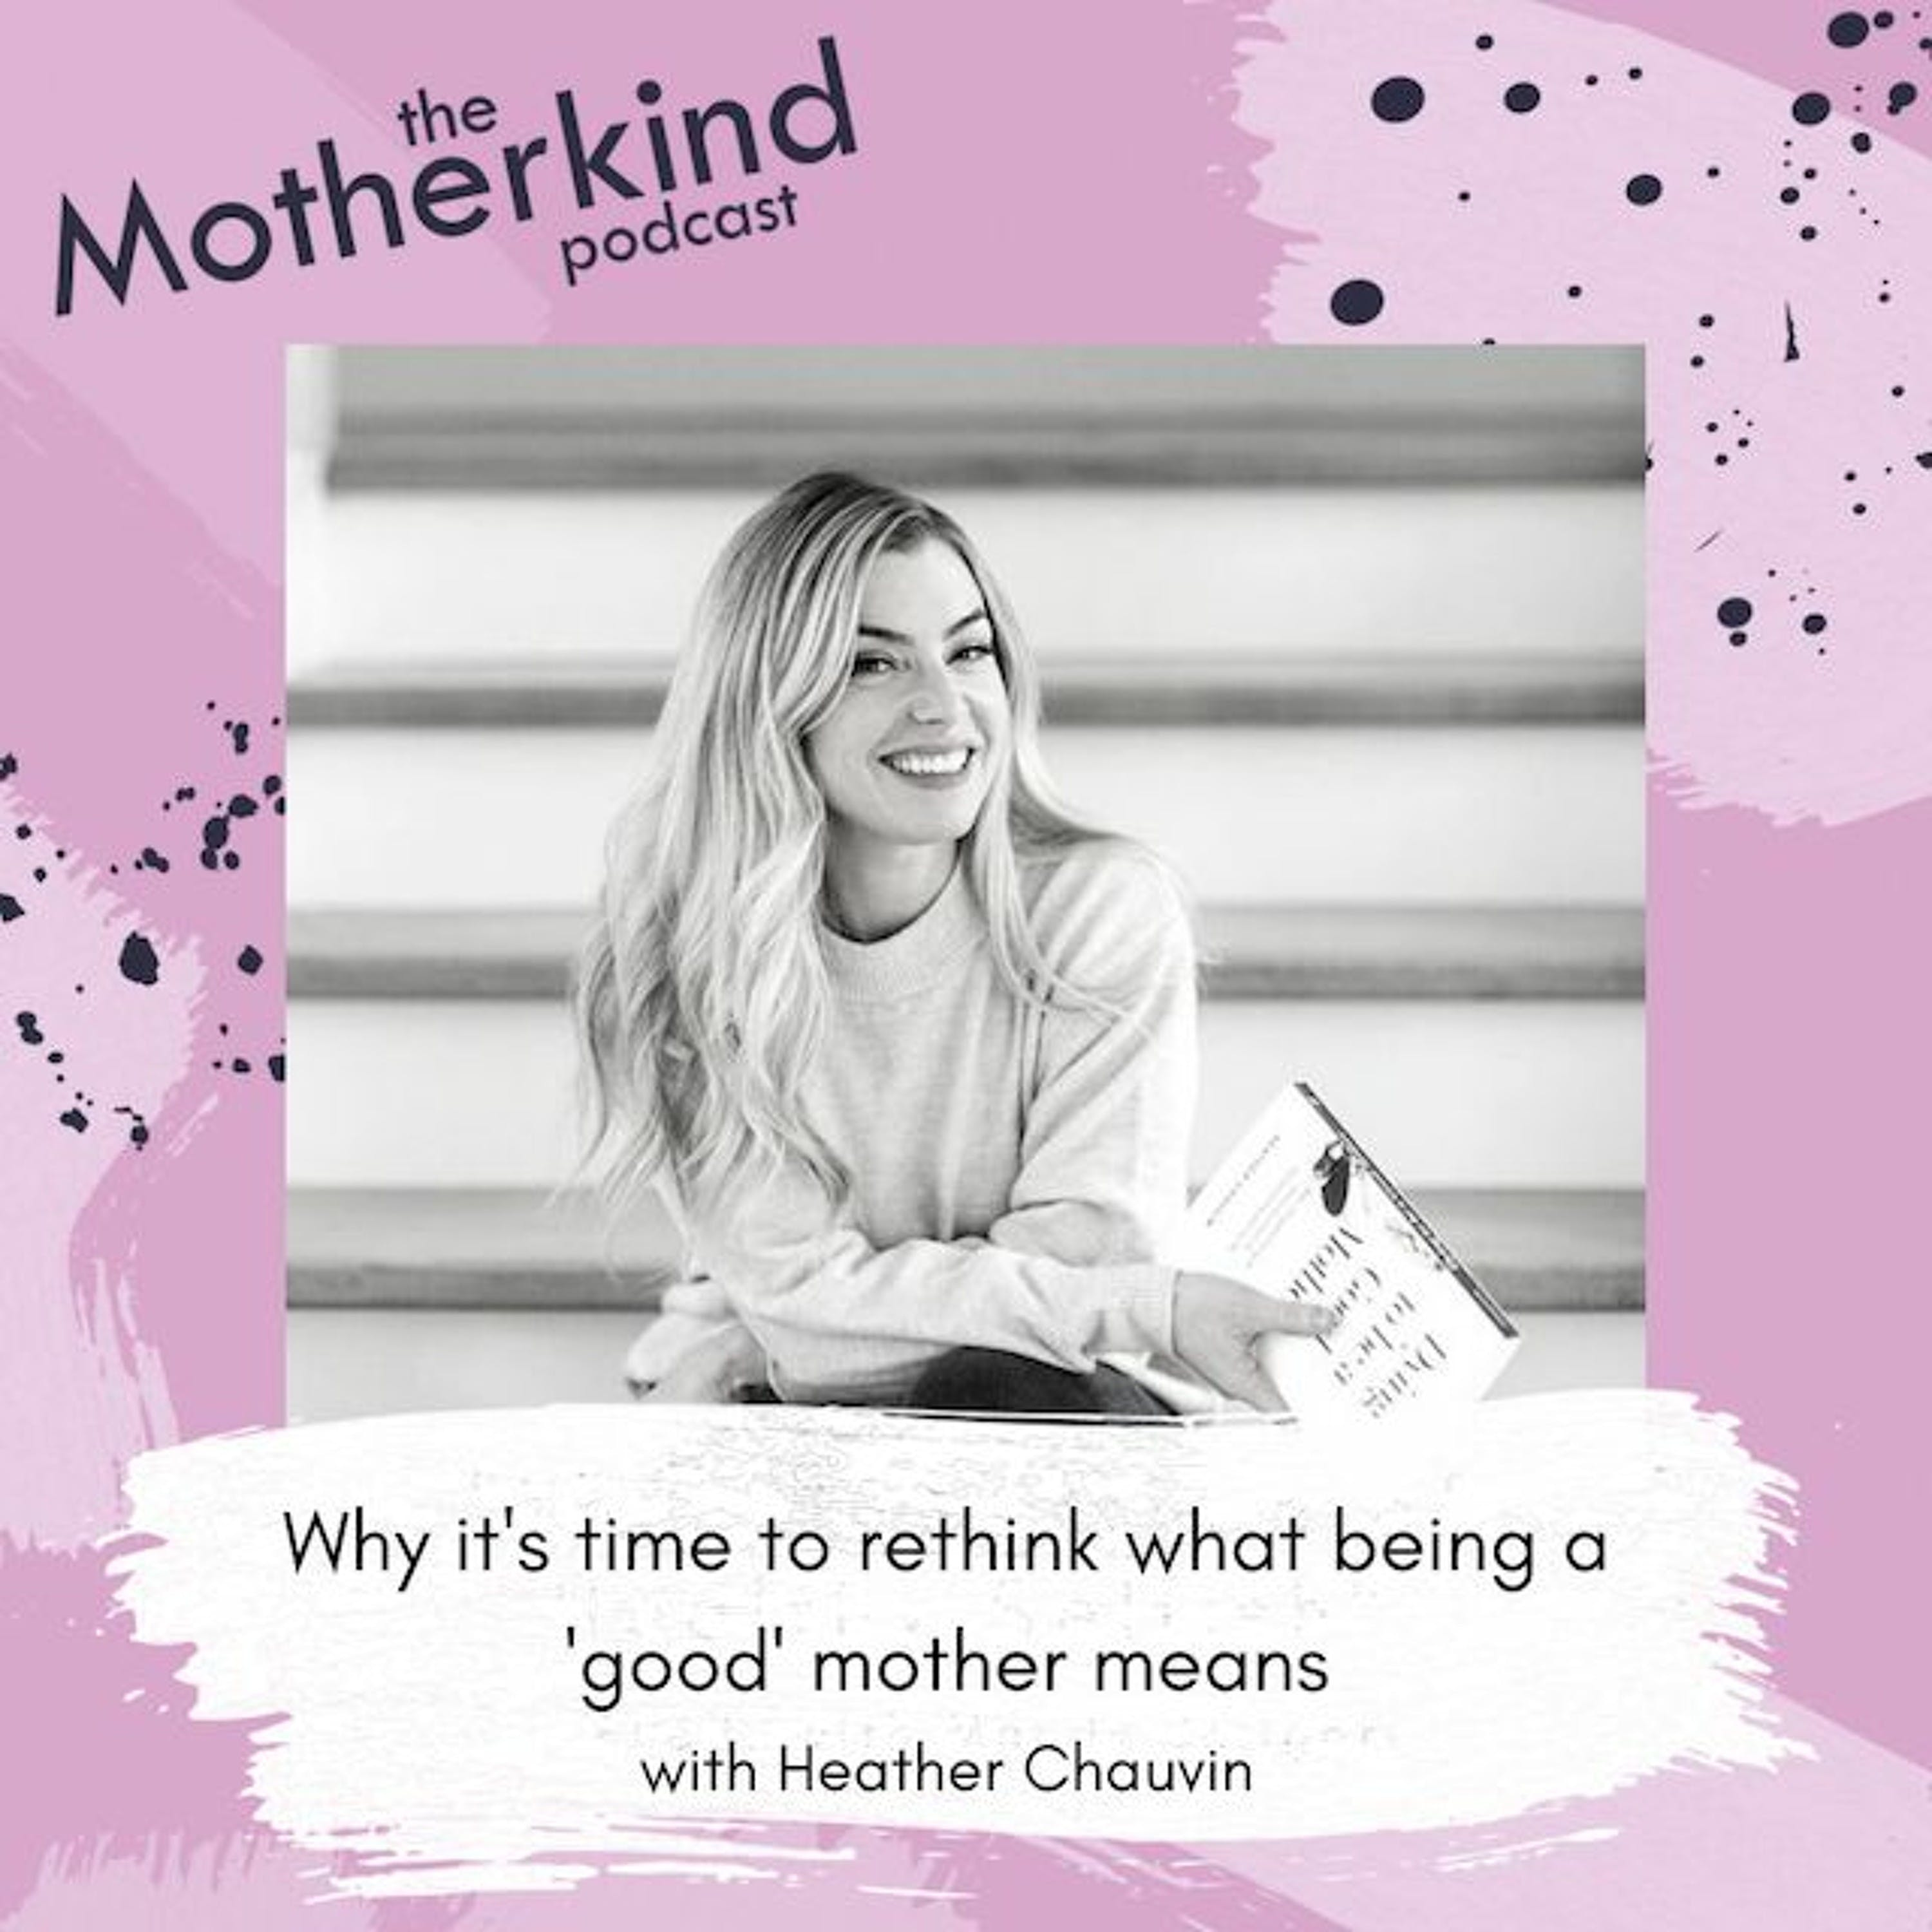 Why it's time to rethink what being a 'good' mother means with Heather Chauvin